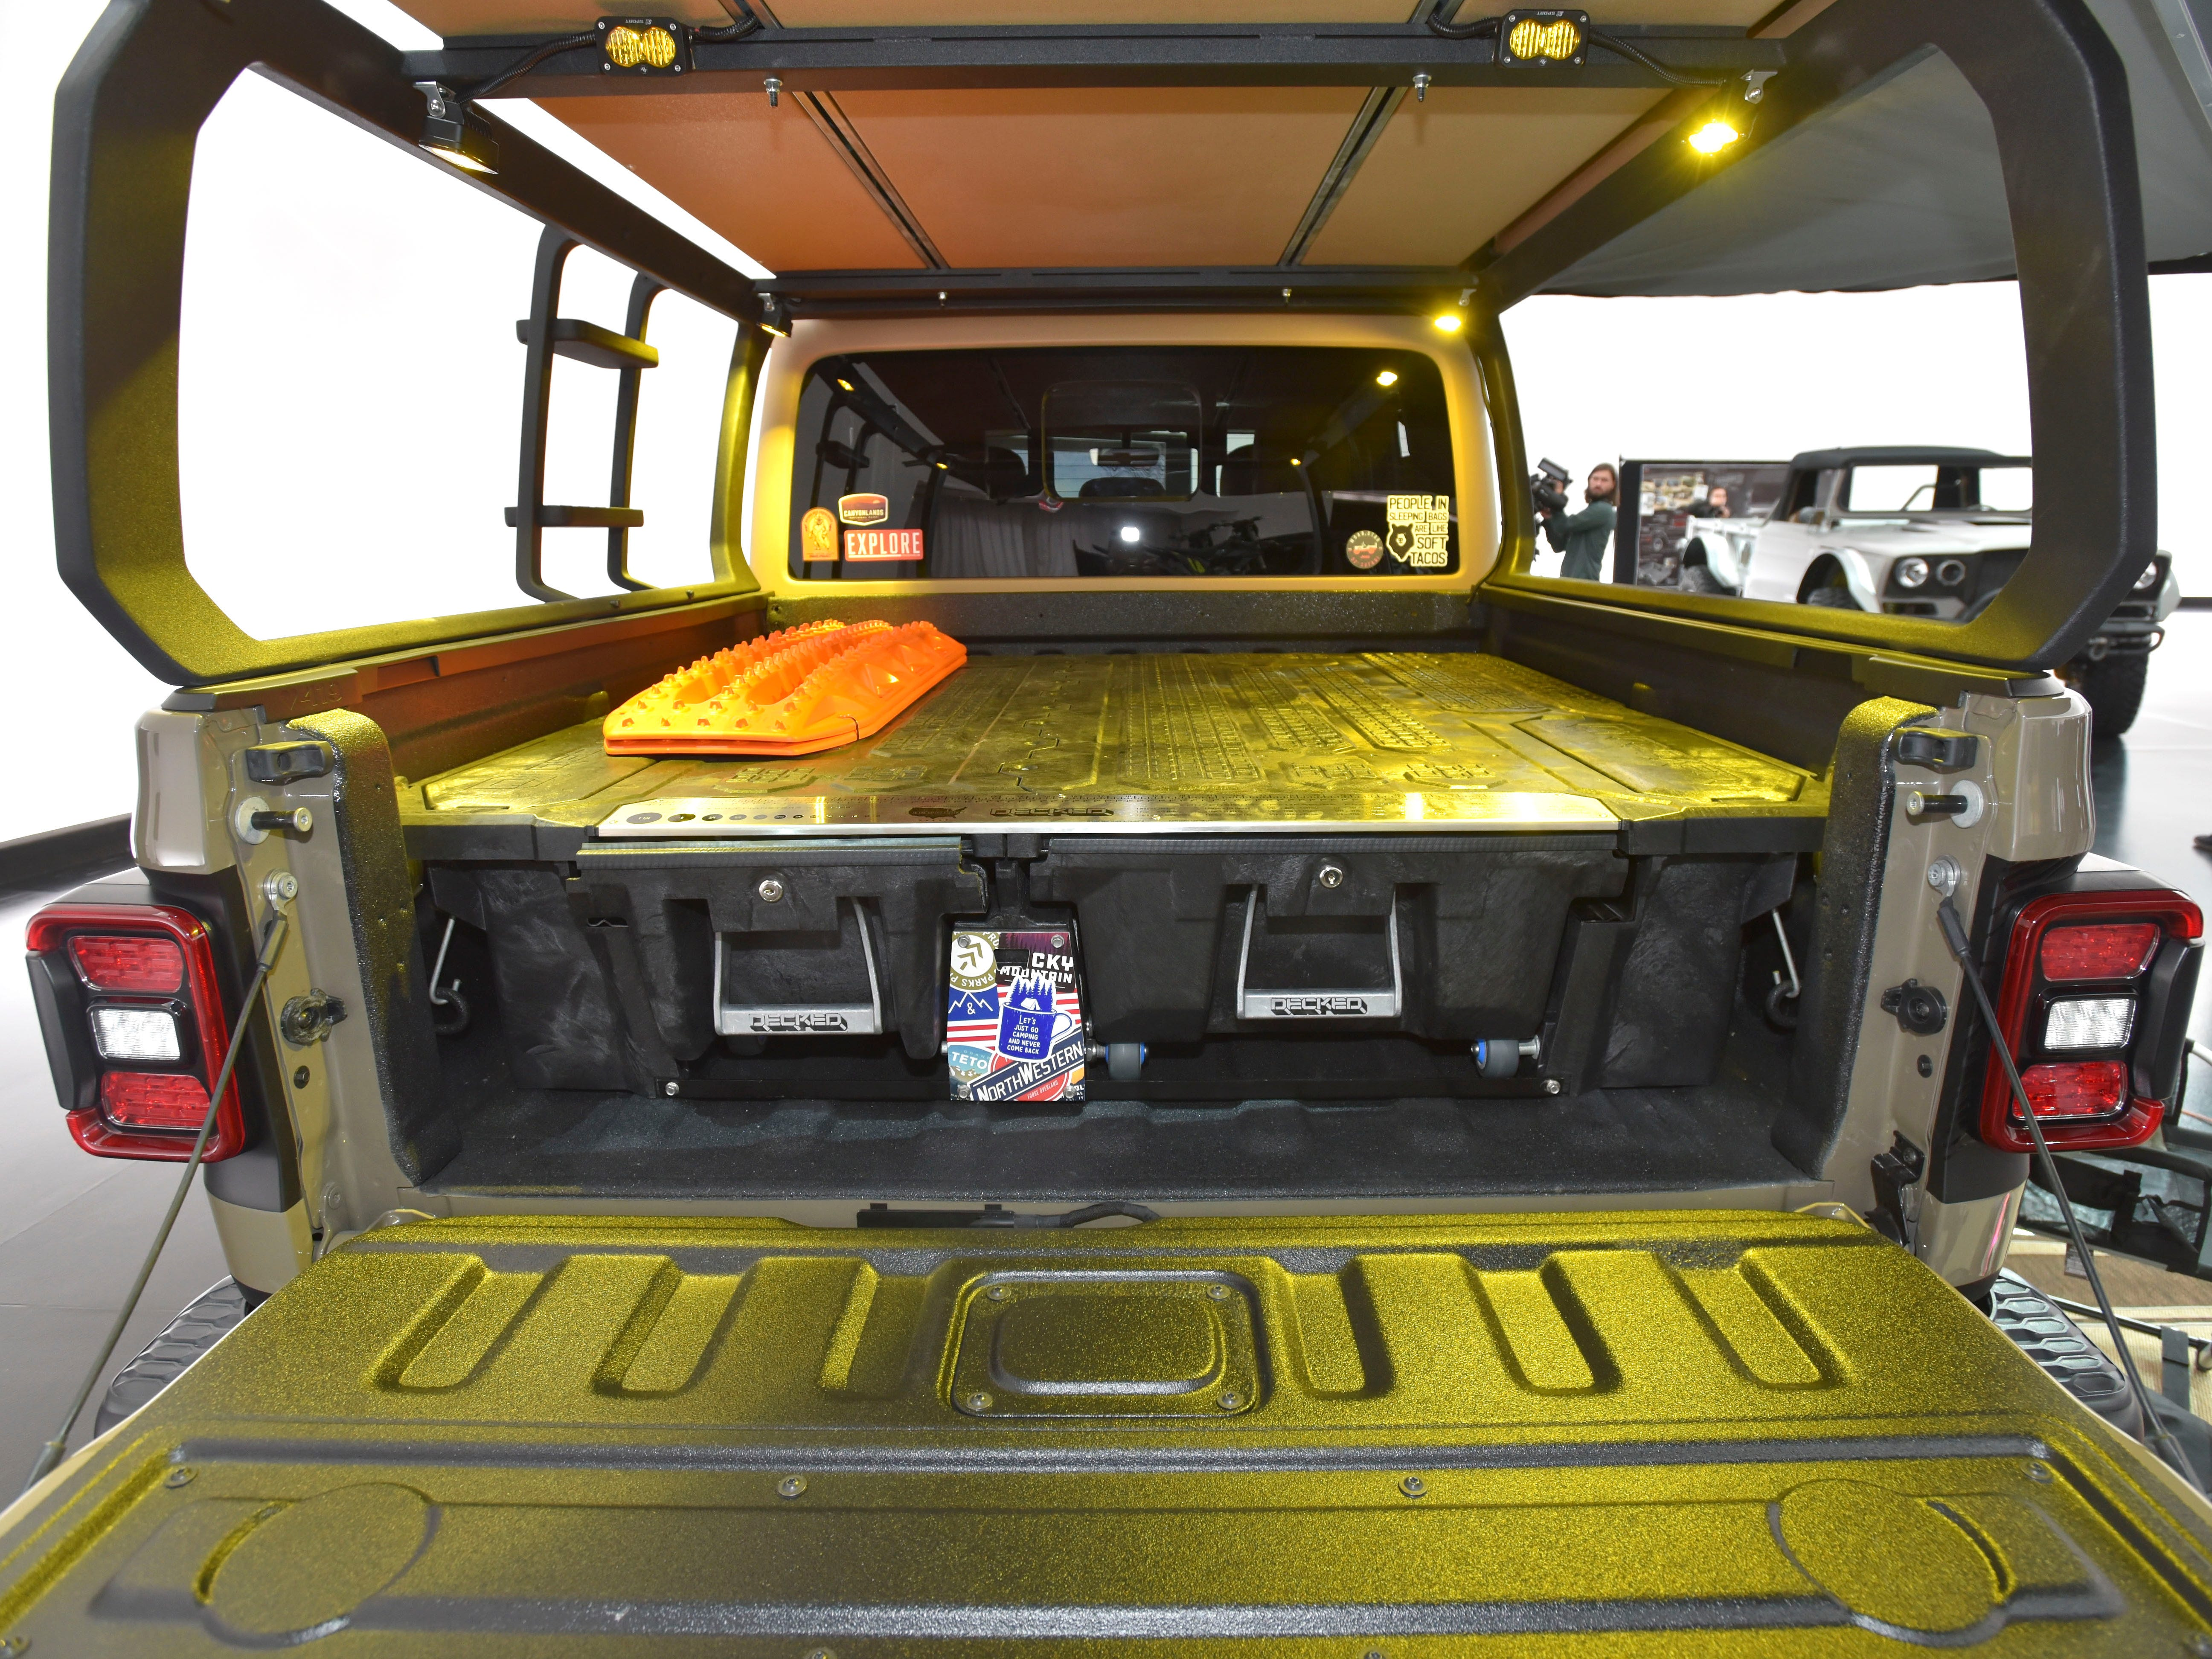 The bed of the Jeep Wayout houses a Mopar/Decked bed-drawer system for dry, lockable storage.